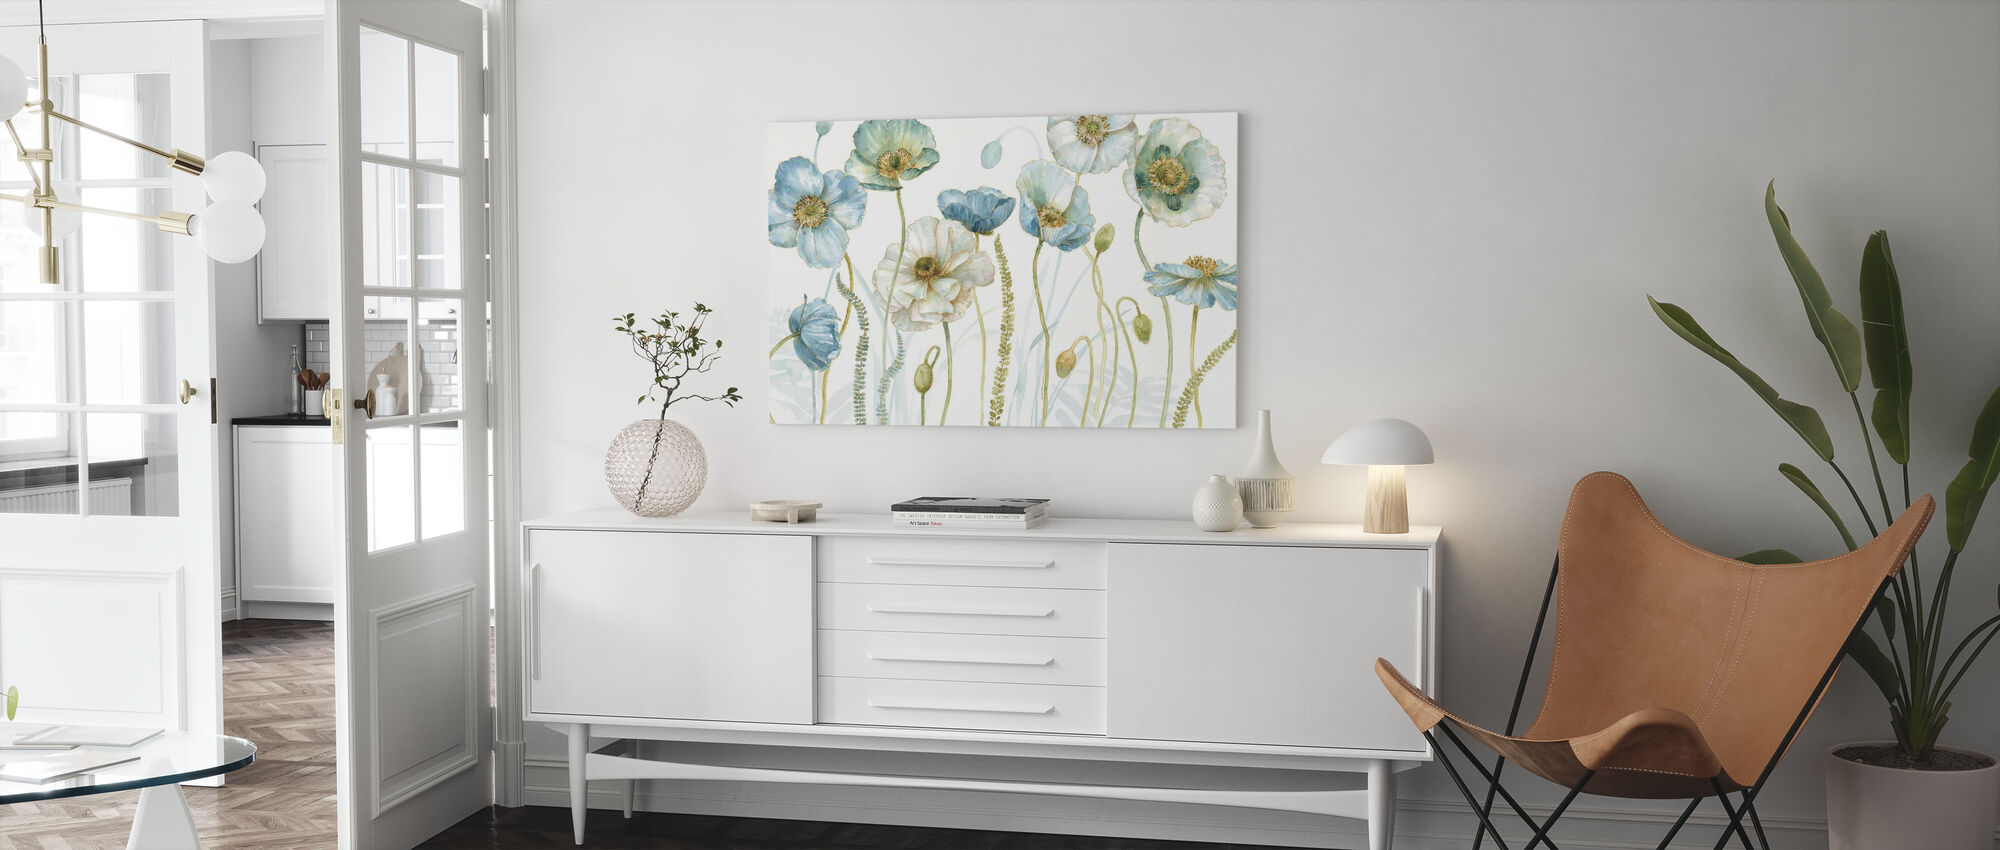 My Greenhouse Flowers 2 - Canvas print - Living Room